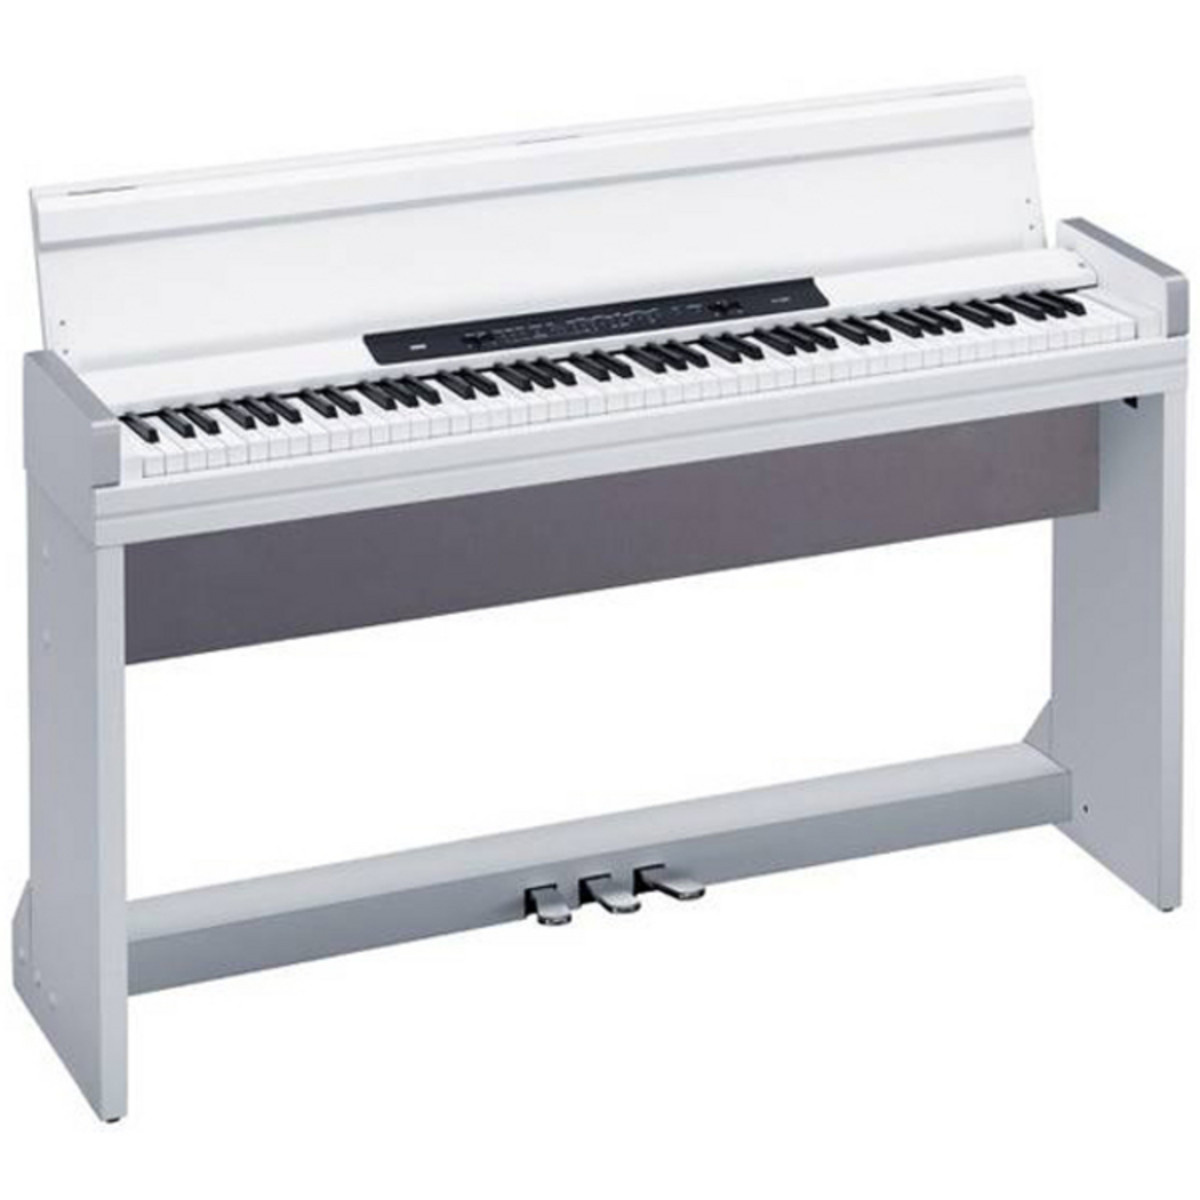 korg lp 350 digital piano white nearly new at gear4music. Black Bedroom Furniture Sets. Home Design Ideas